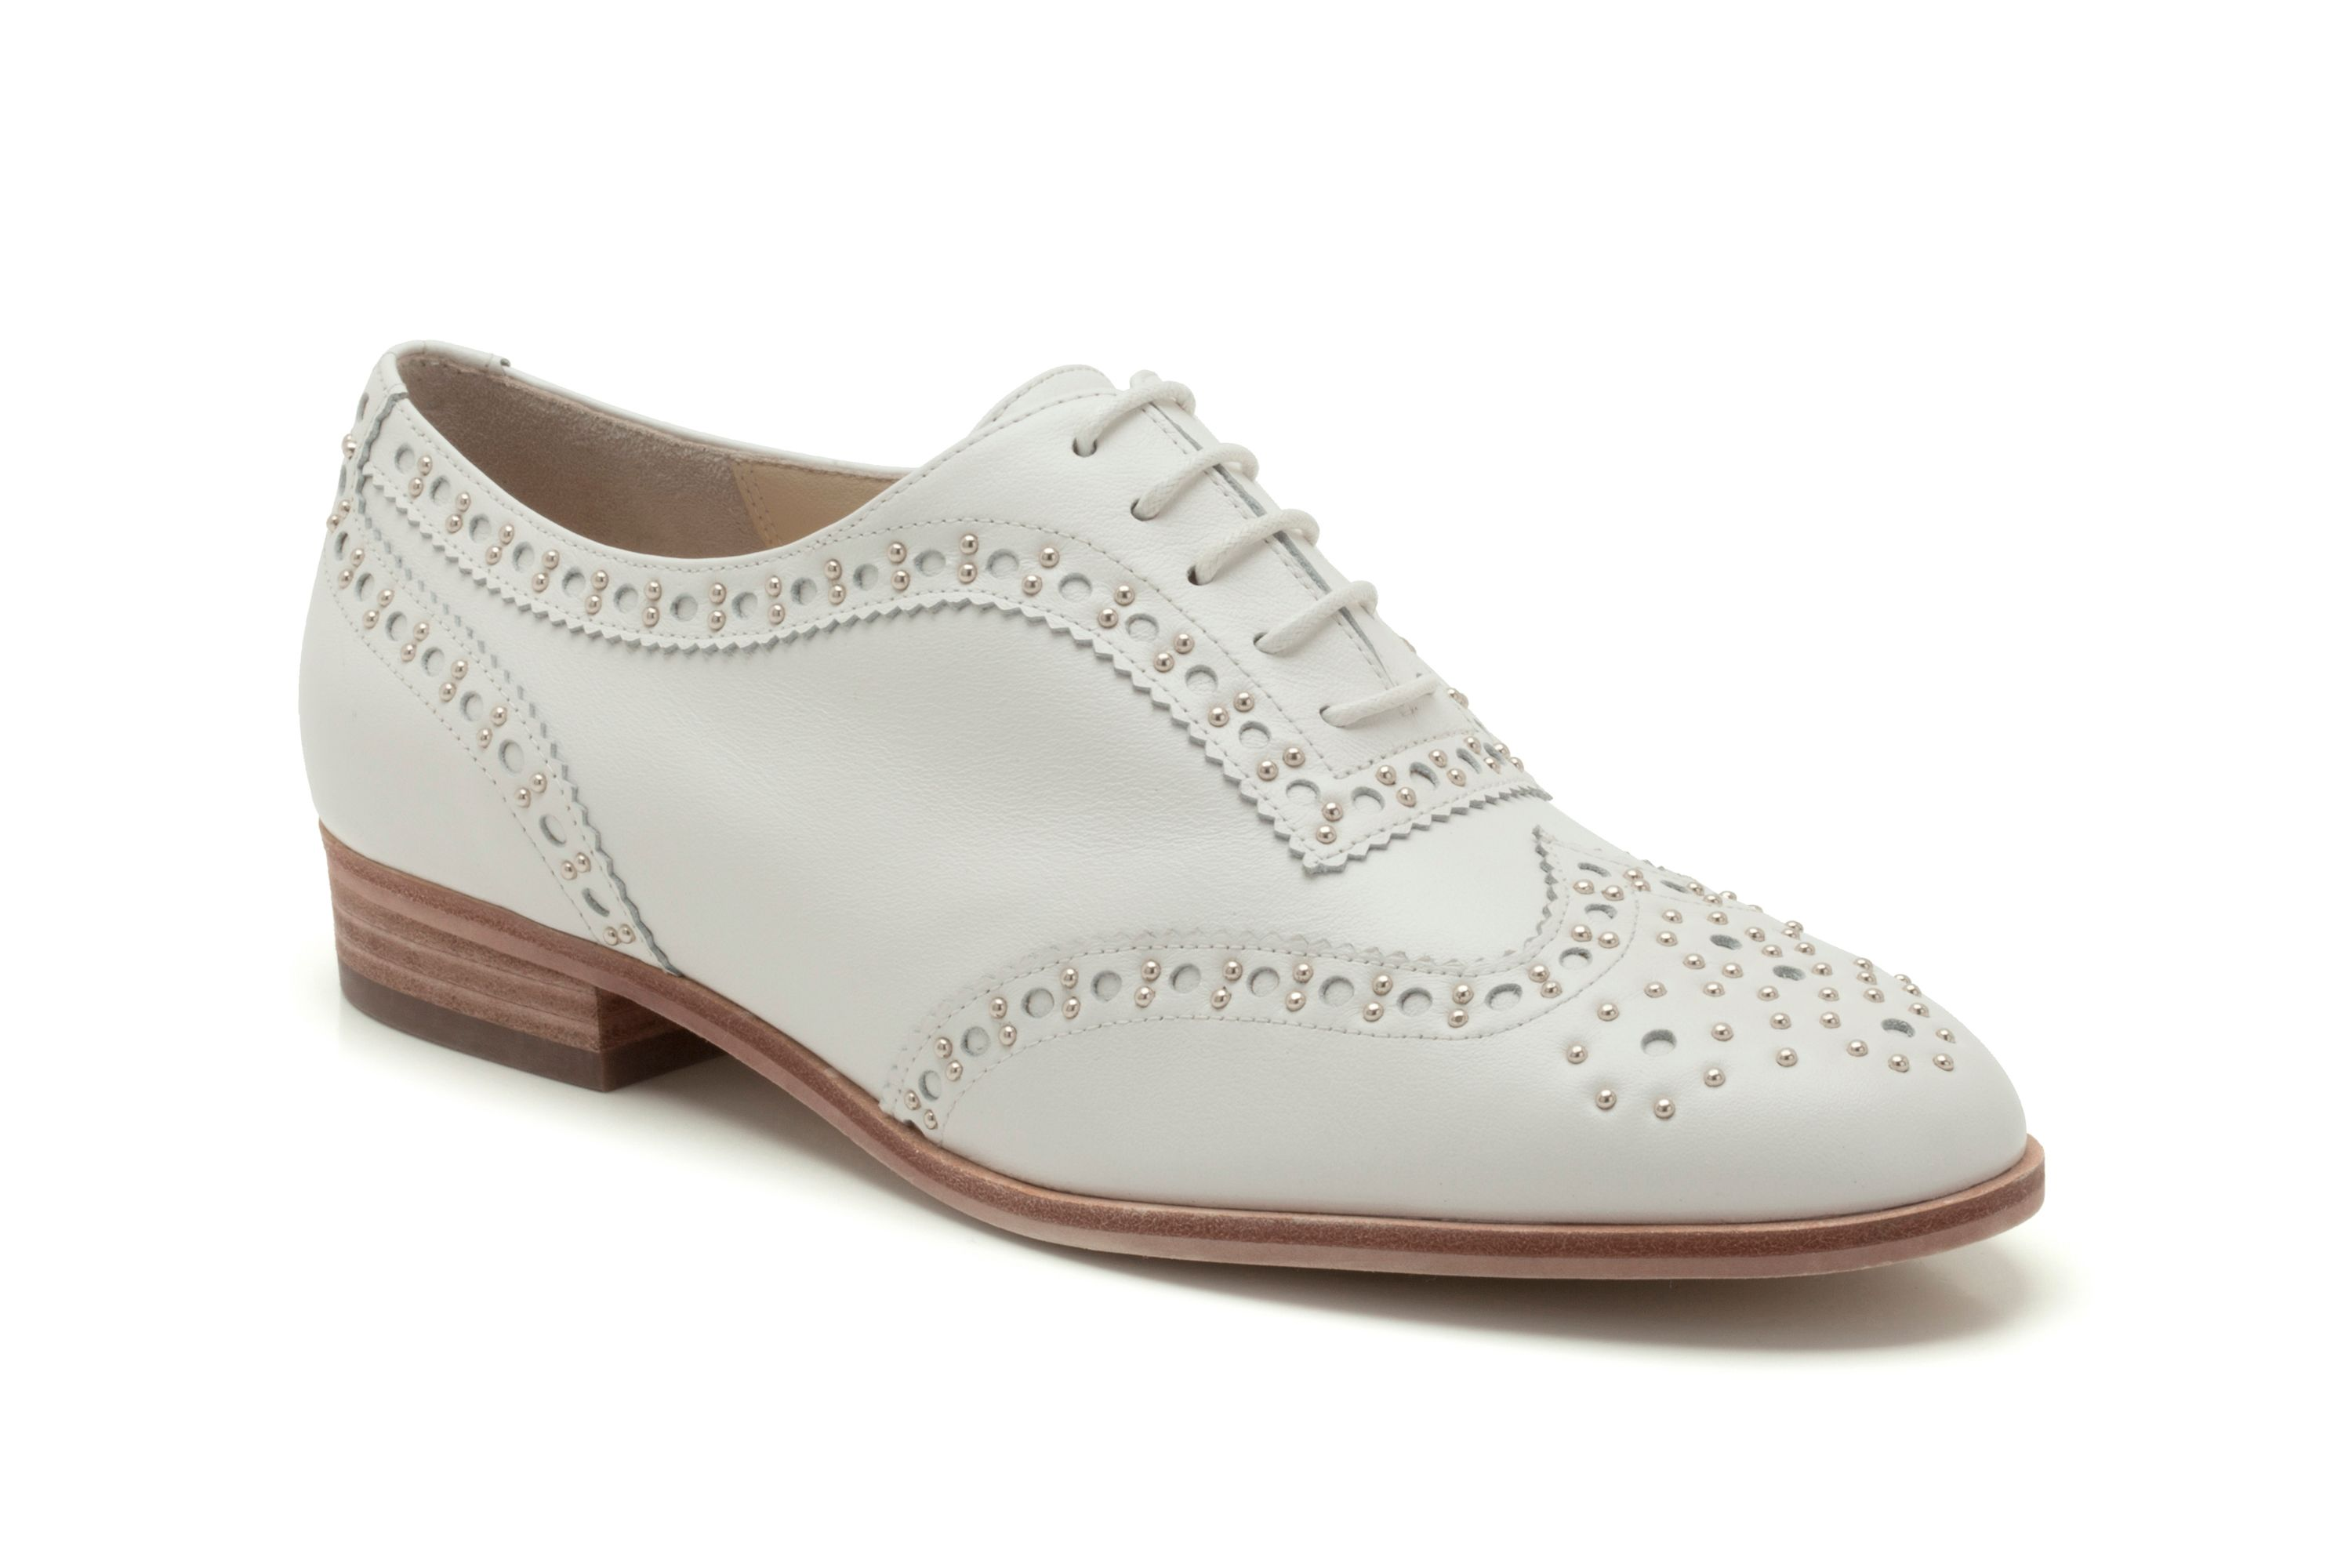 La promenade court shoes